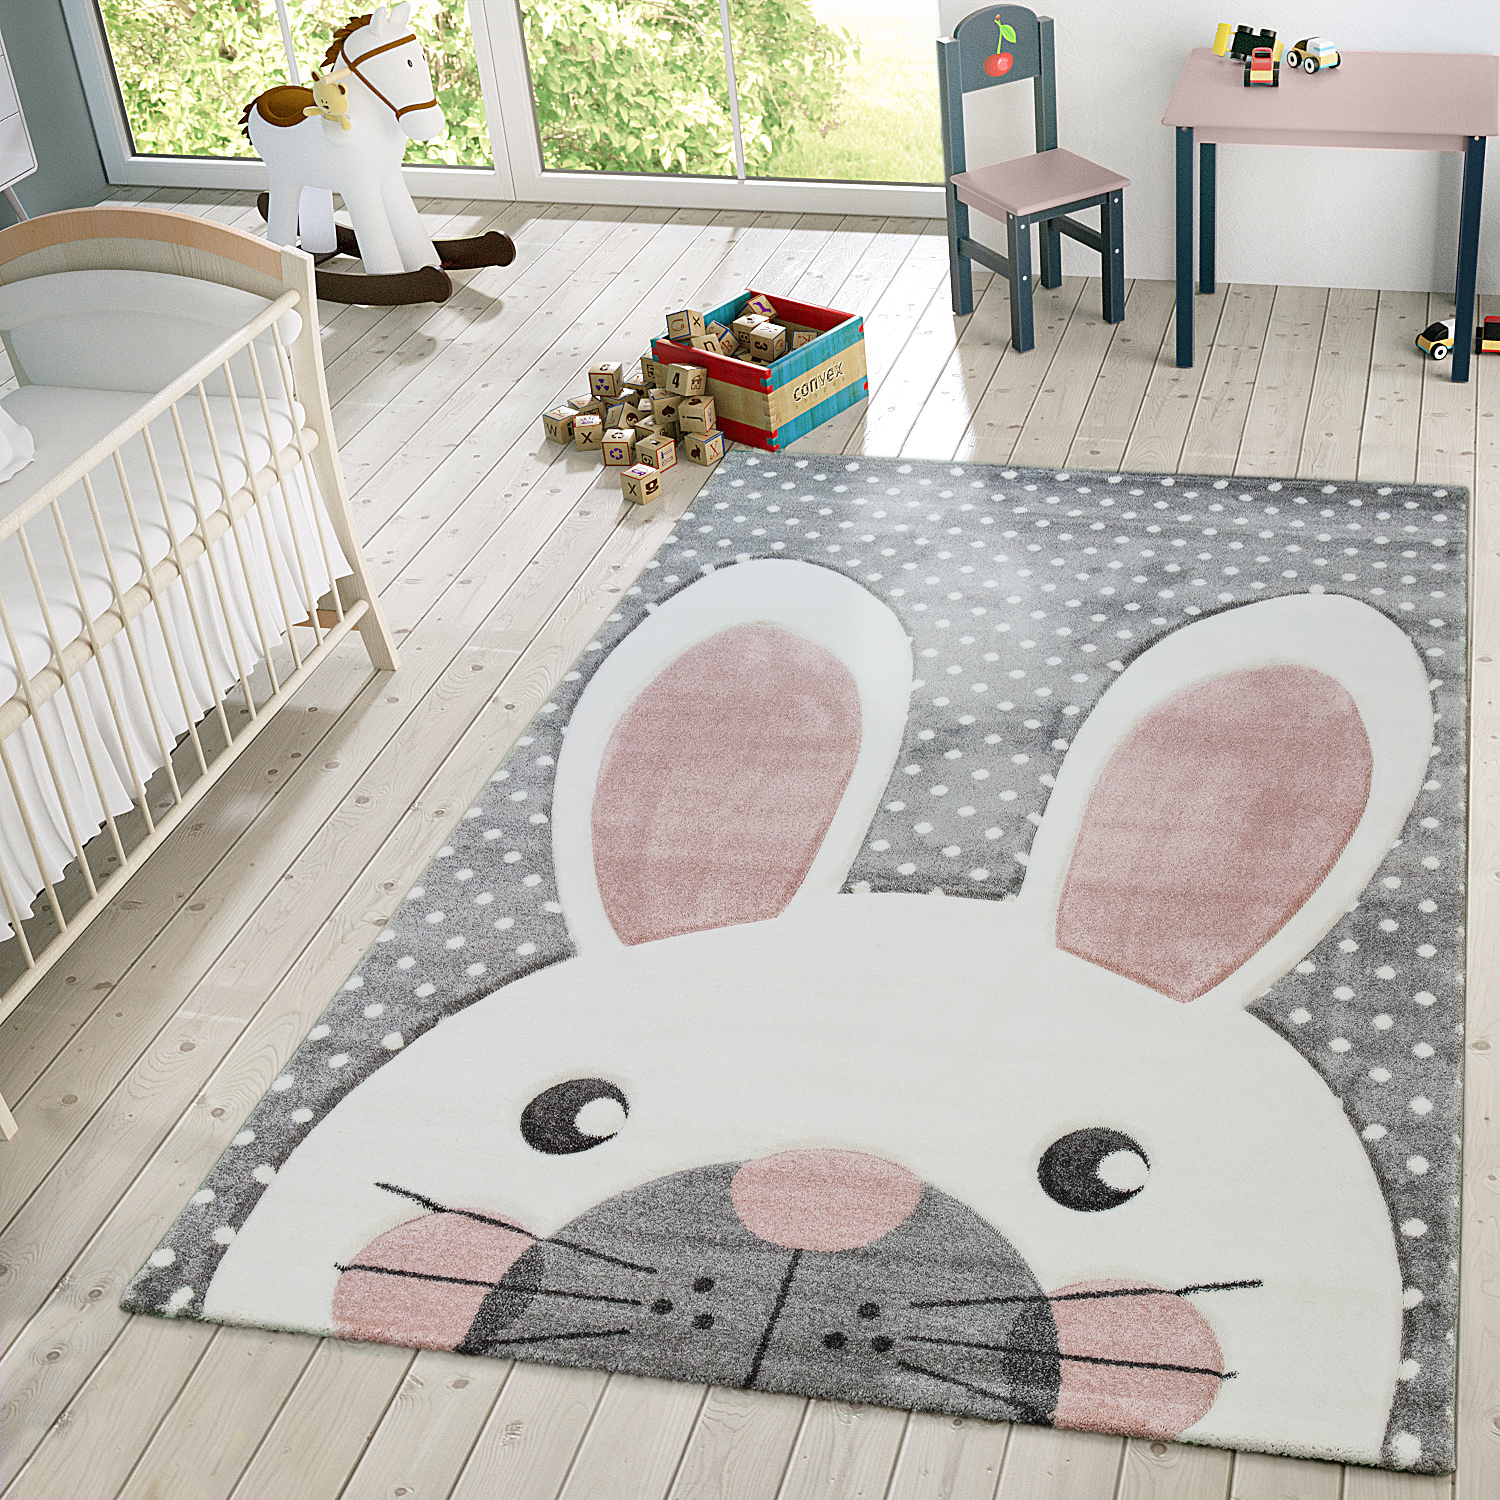 kinder teppich moderner spielteppich hase pastell t ne in beige grau rosa kinderteppich. Black Bedroom Furniture Sets. Home Design Ideas